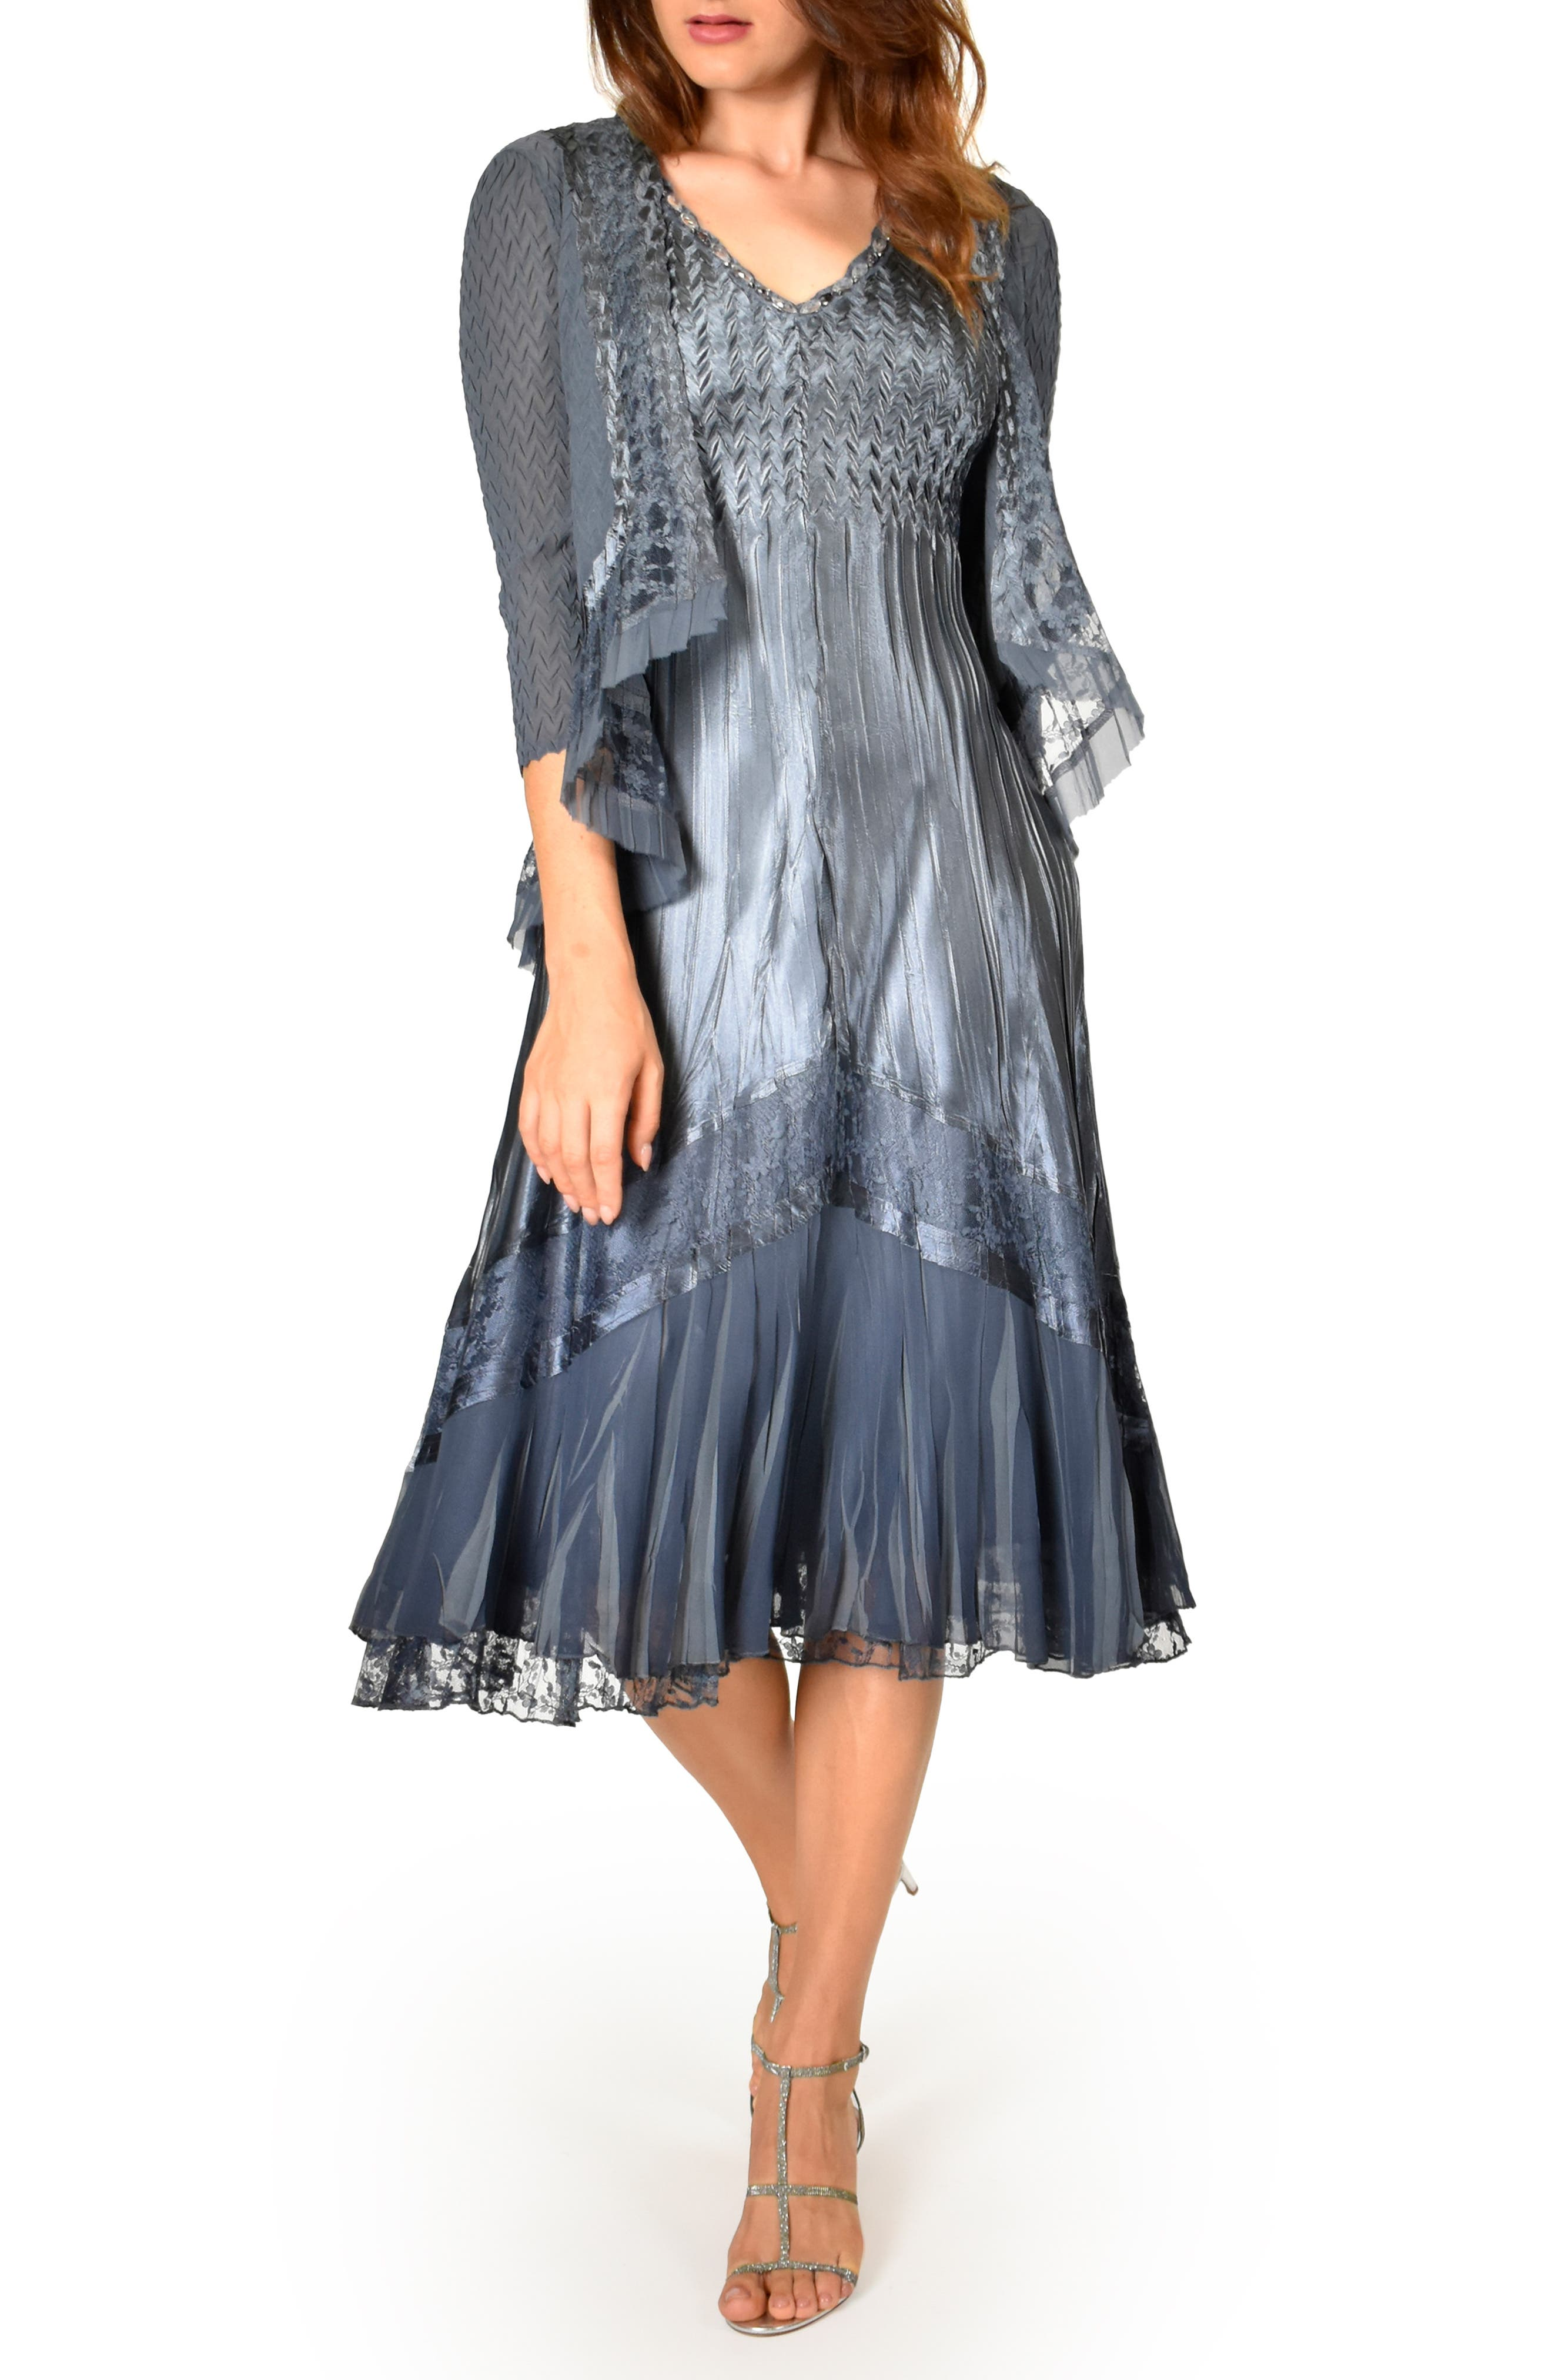 Vintage 1920s Dresses – Where to Buy Womens Komarov Lace Inset Dress With Jacket $448.00 AT vintagedancer.com